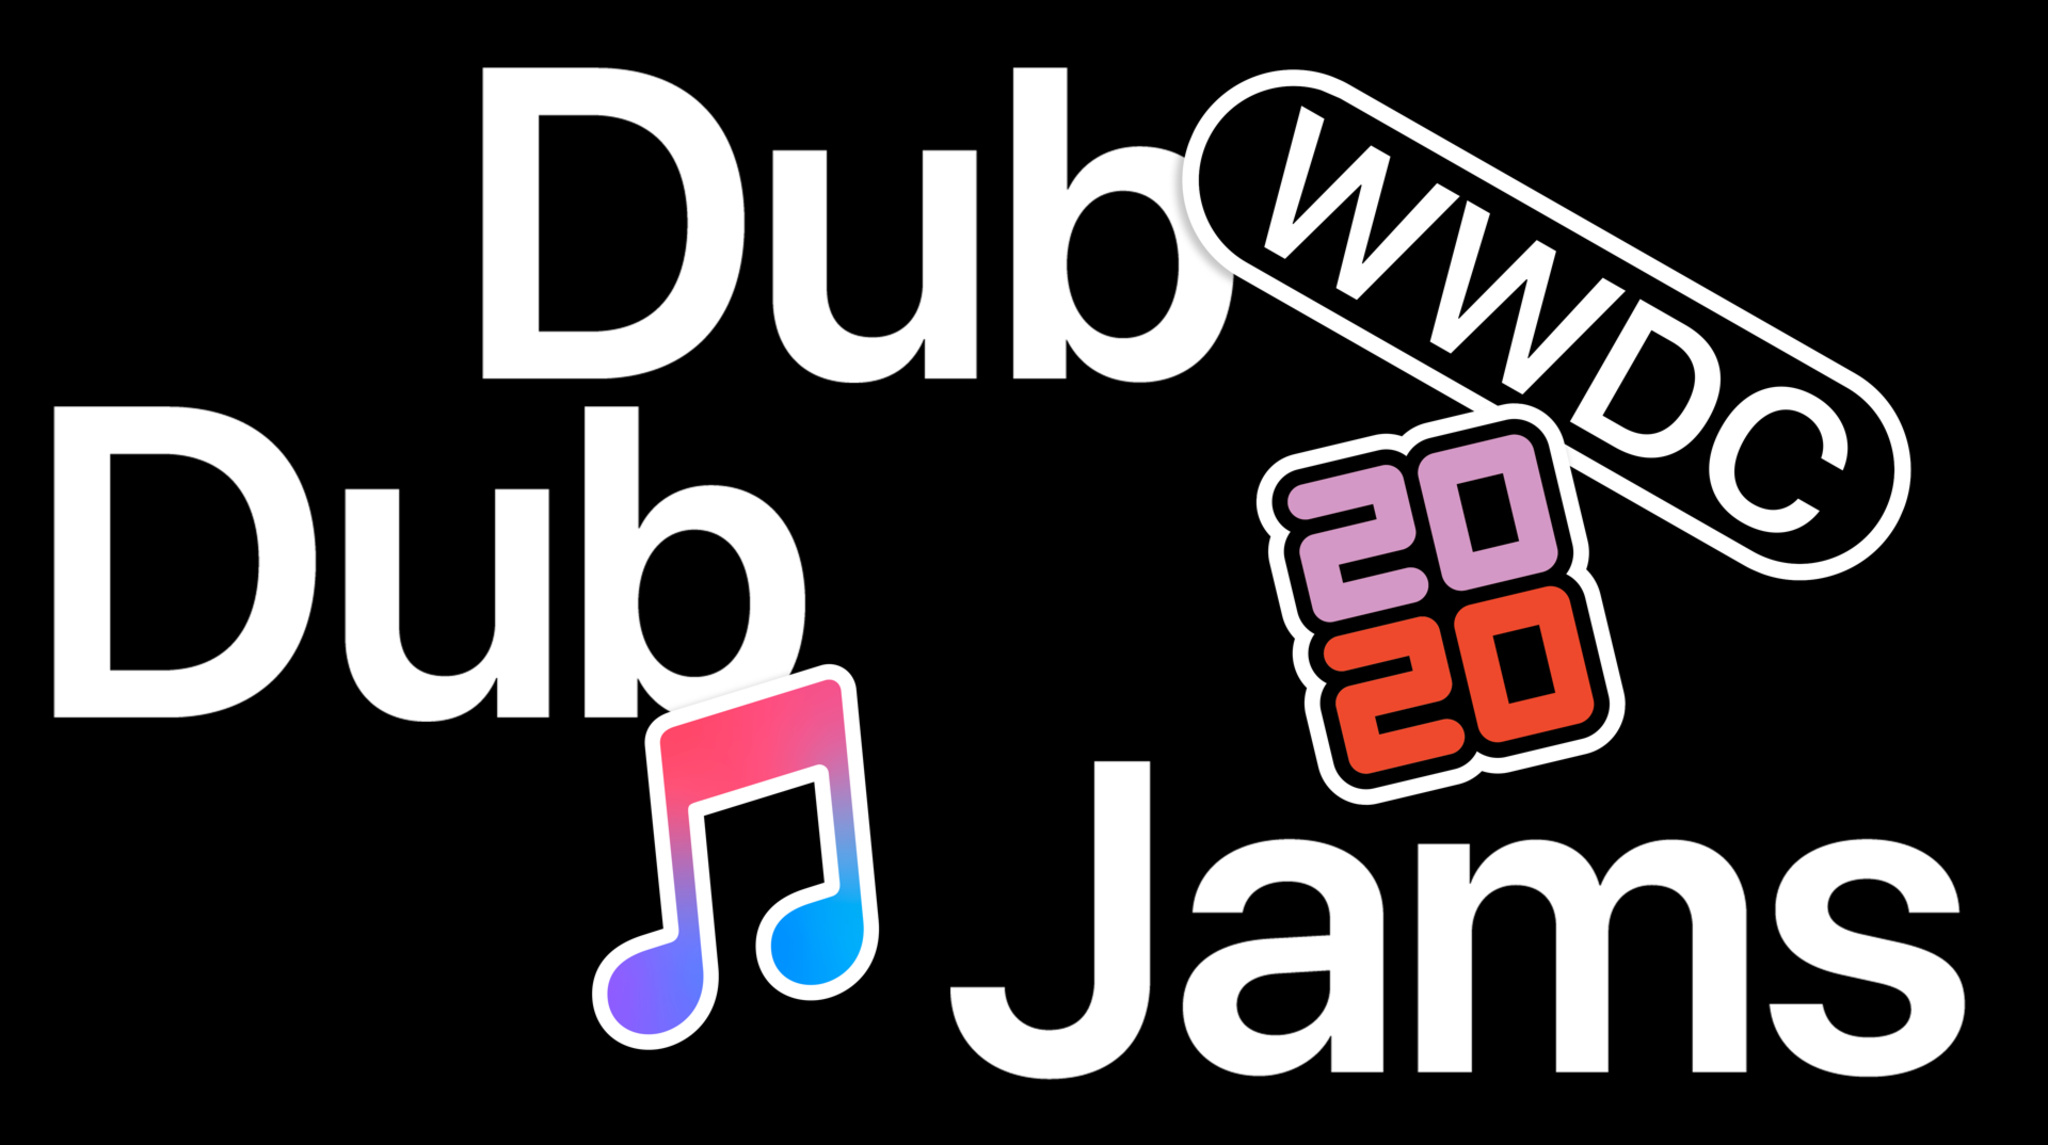 WWDC20 Dub Dub Jams with 2020 and Apple Music sticker